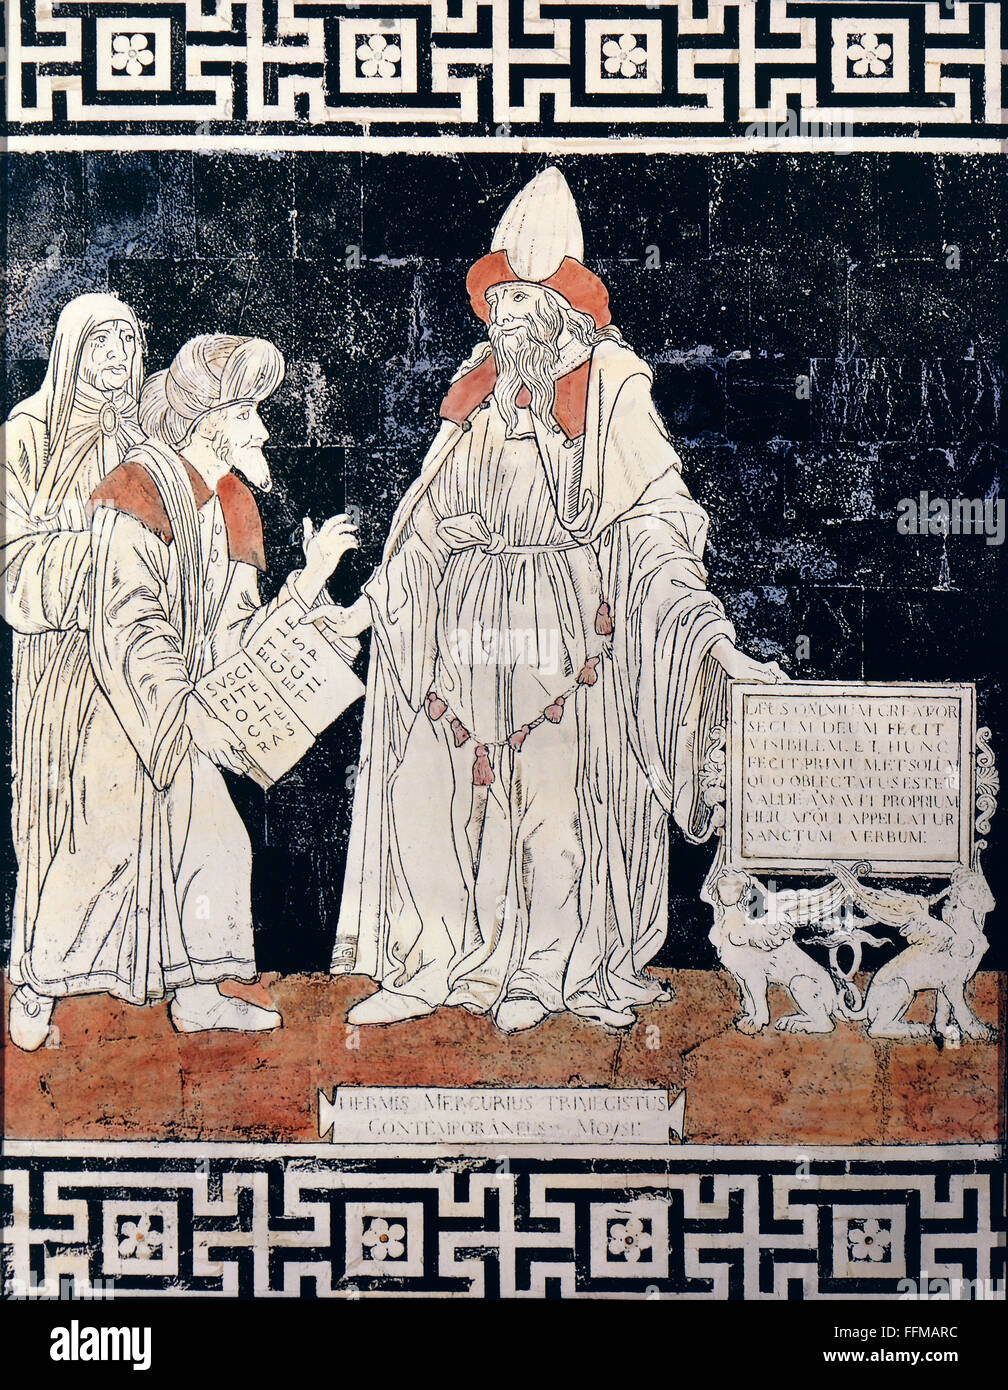 Hermes (lat. Mercurius), Greek God, messenger of the gods, as Hermes Trismegistos, full length, with the personification - Stock Image